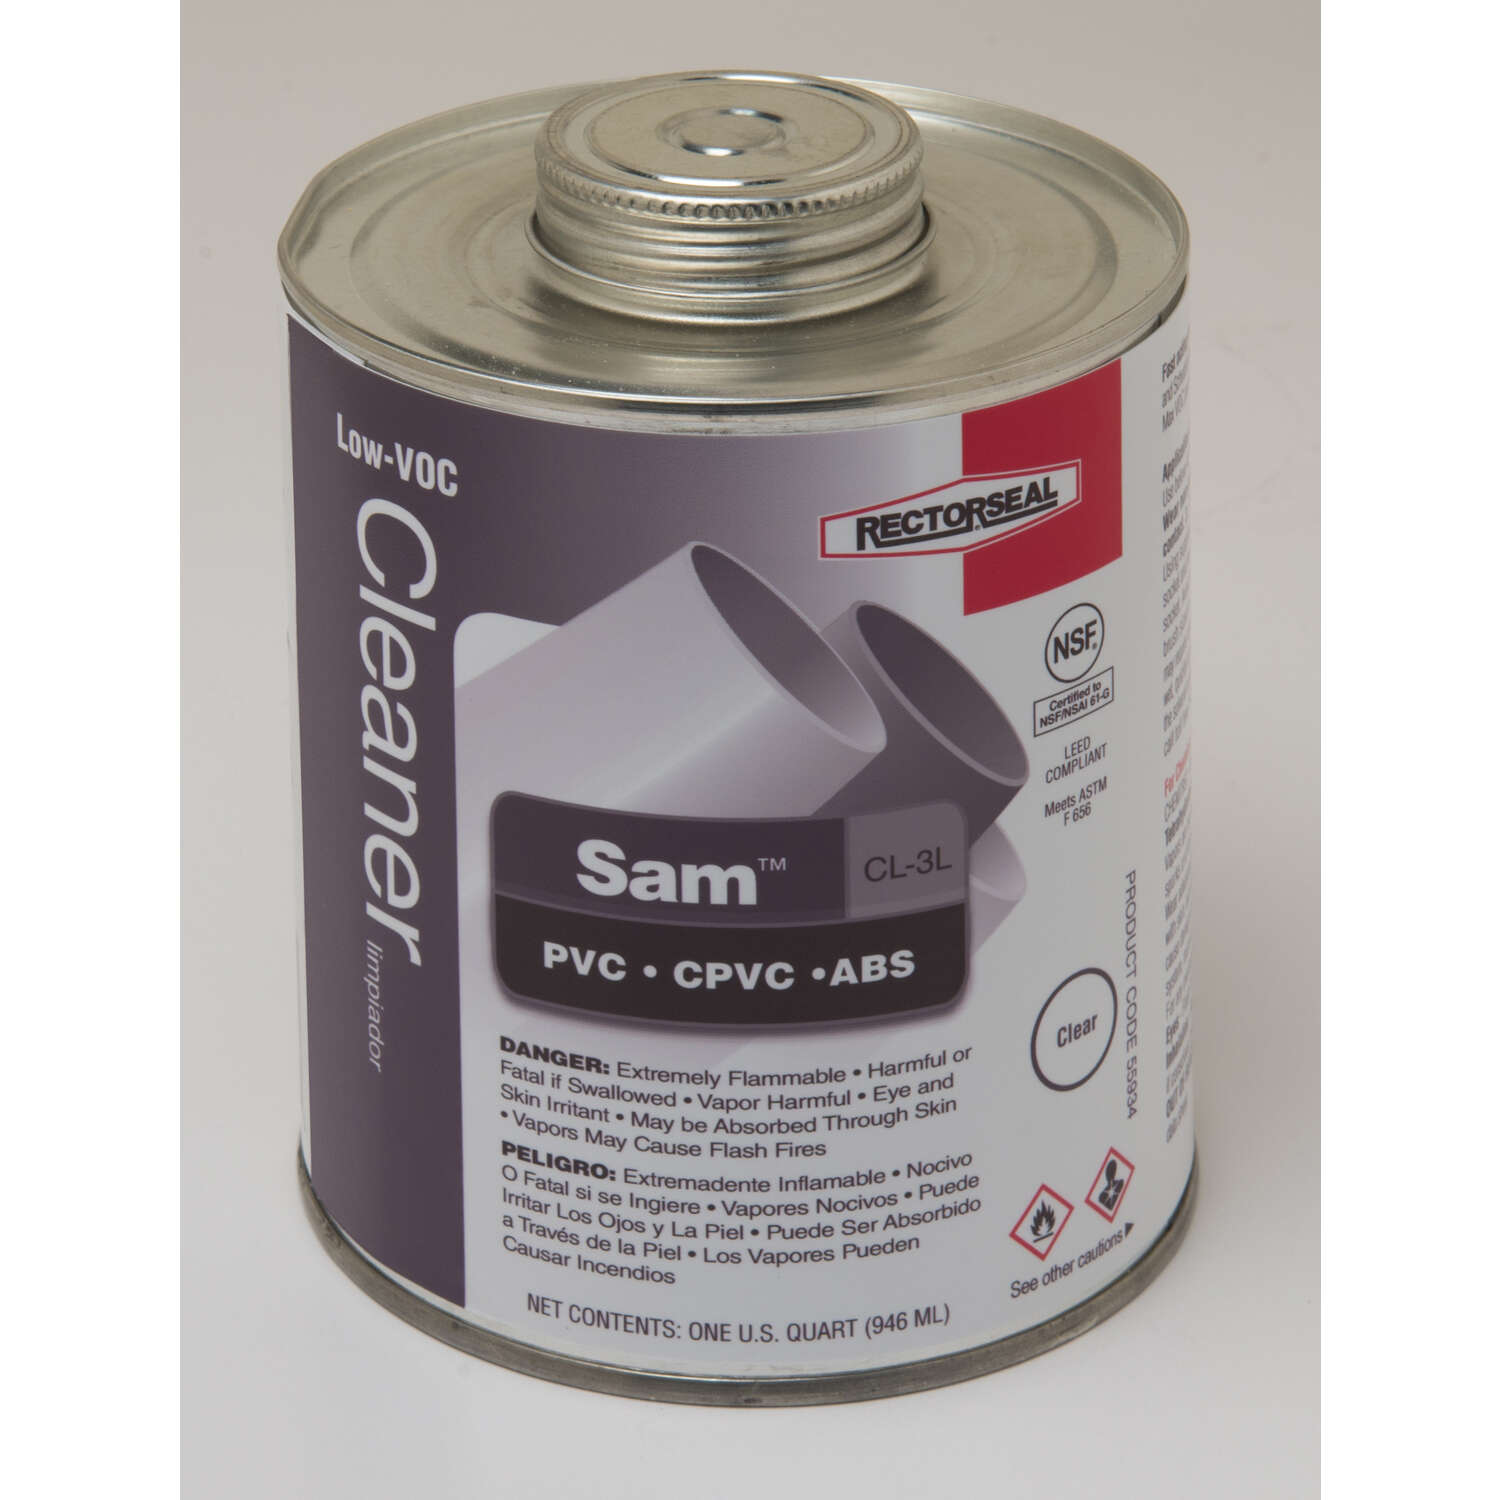 Rectorseal  Sam  Clear  Cleaner  For ABS/CPVC/PVC 32 oz.